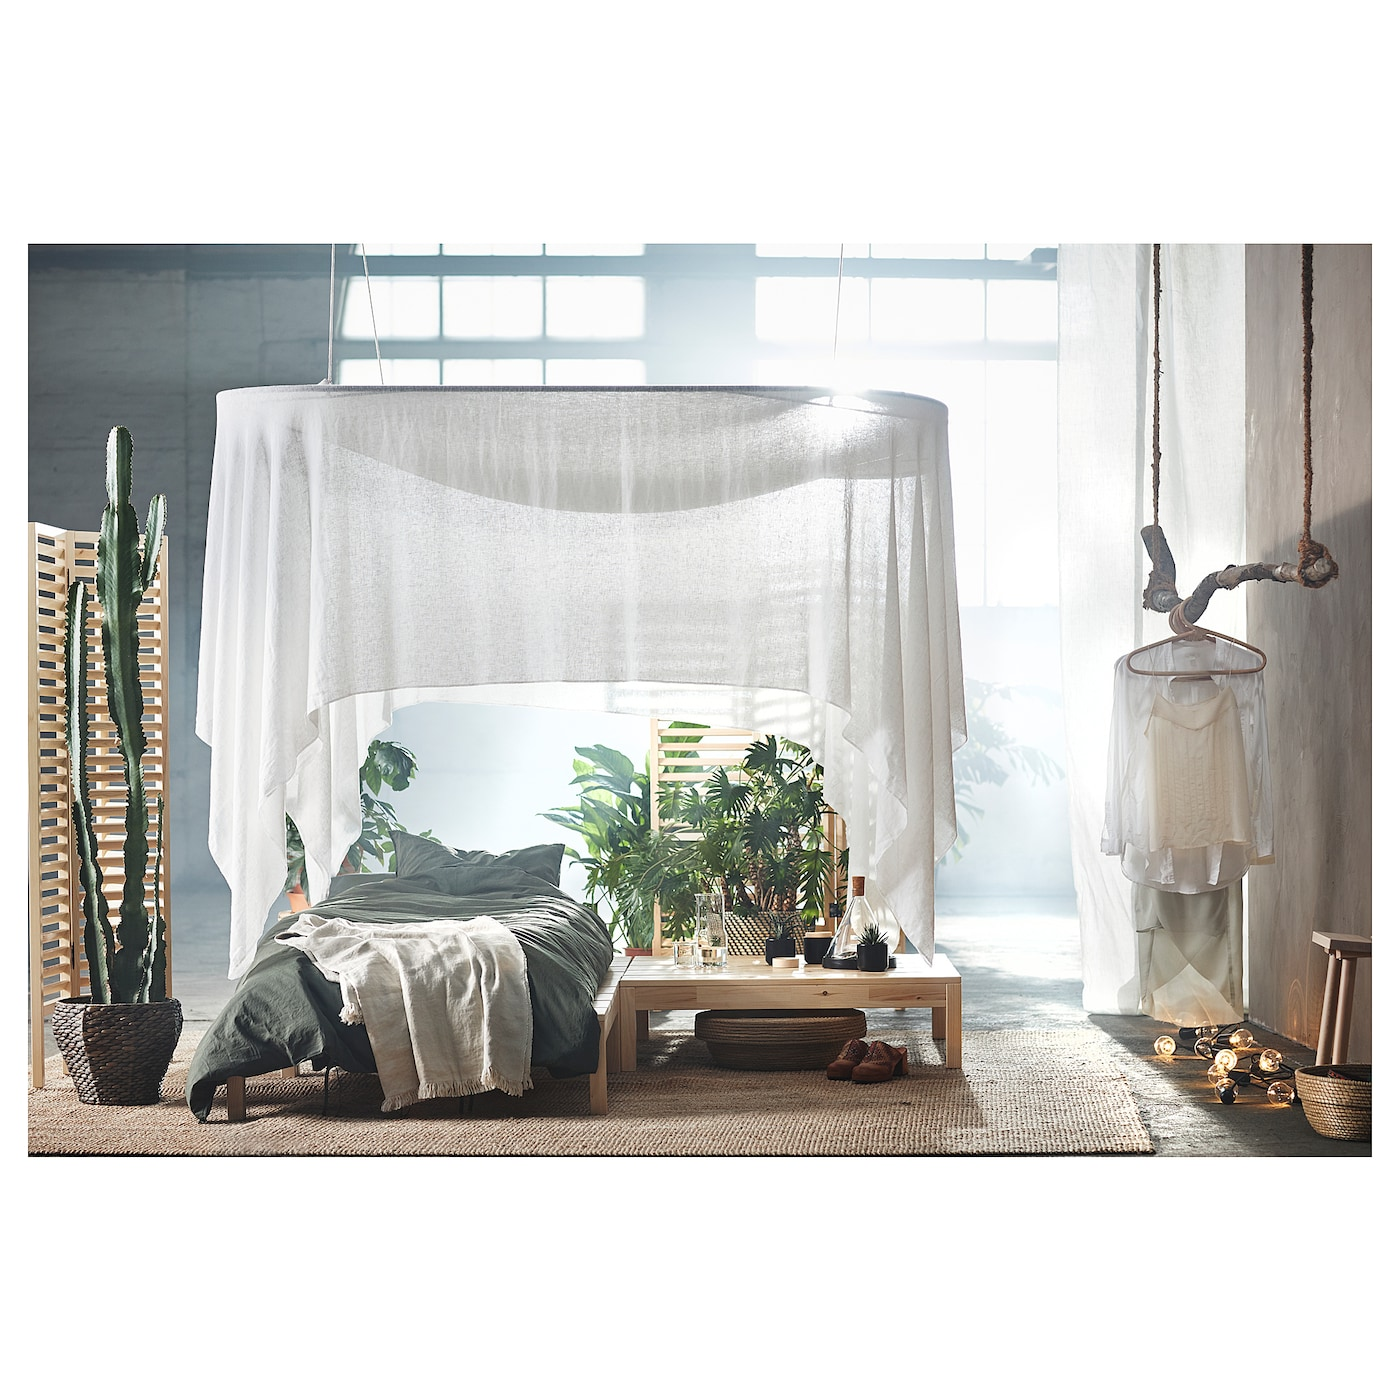 ships garden fabric product mildred platform overstock bed grey alder home to canada hillary clay upholstered eabe